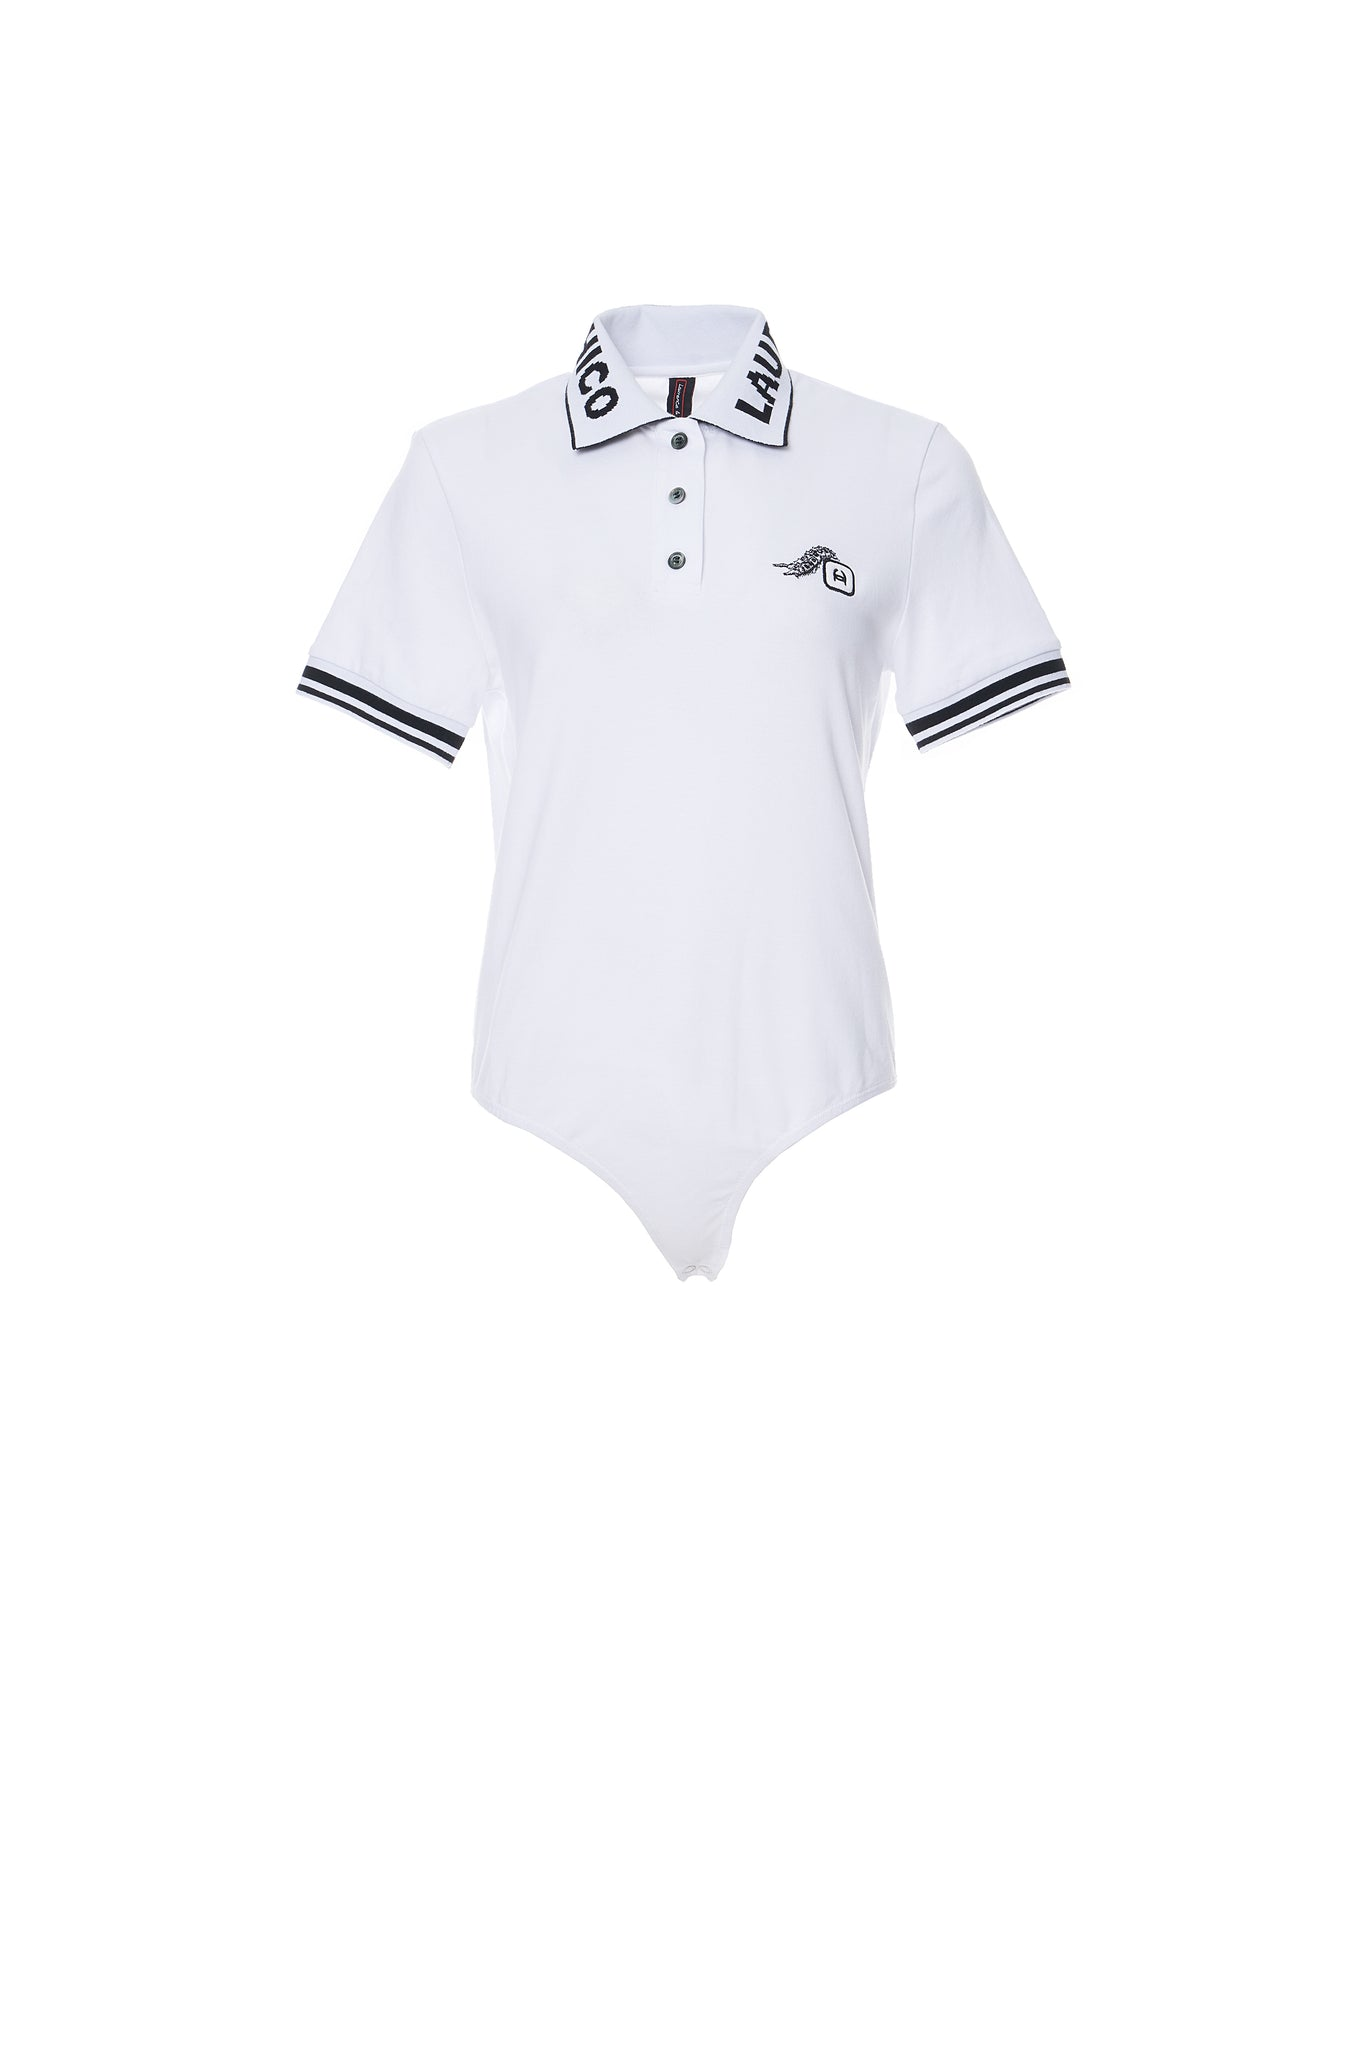 Caterpillar Embroidery Polo Bodysuit, White